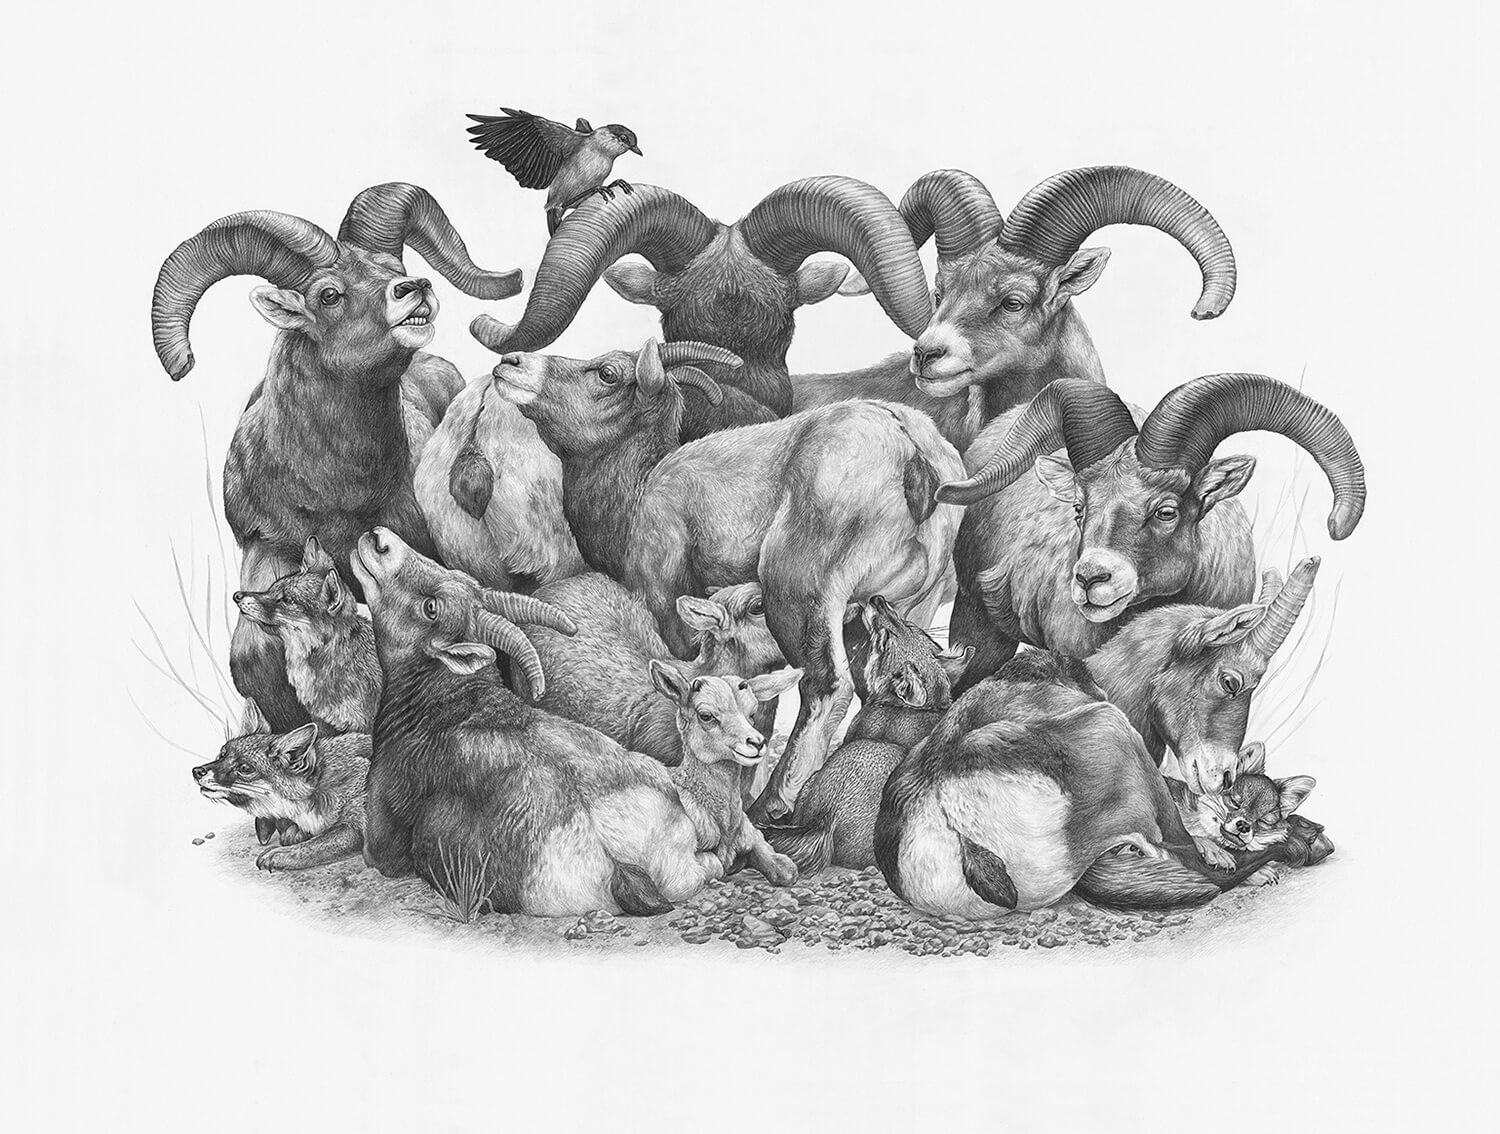 Group of rams